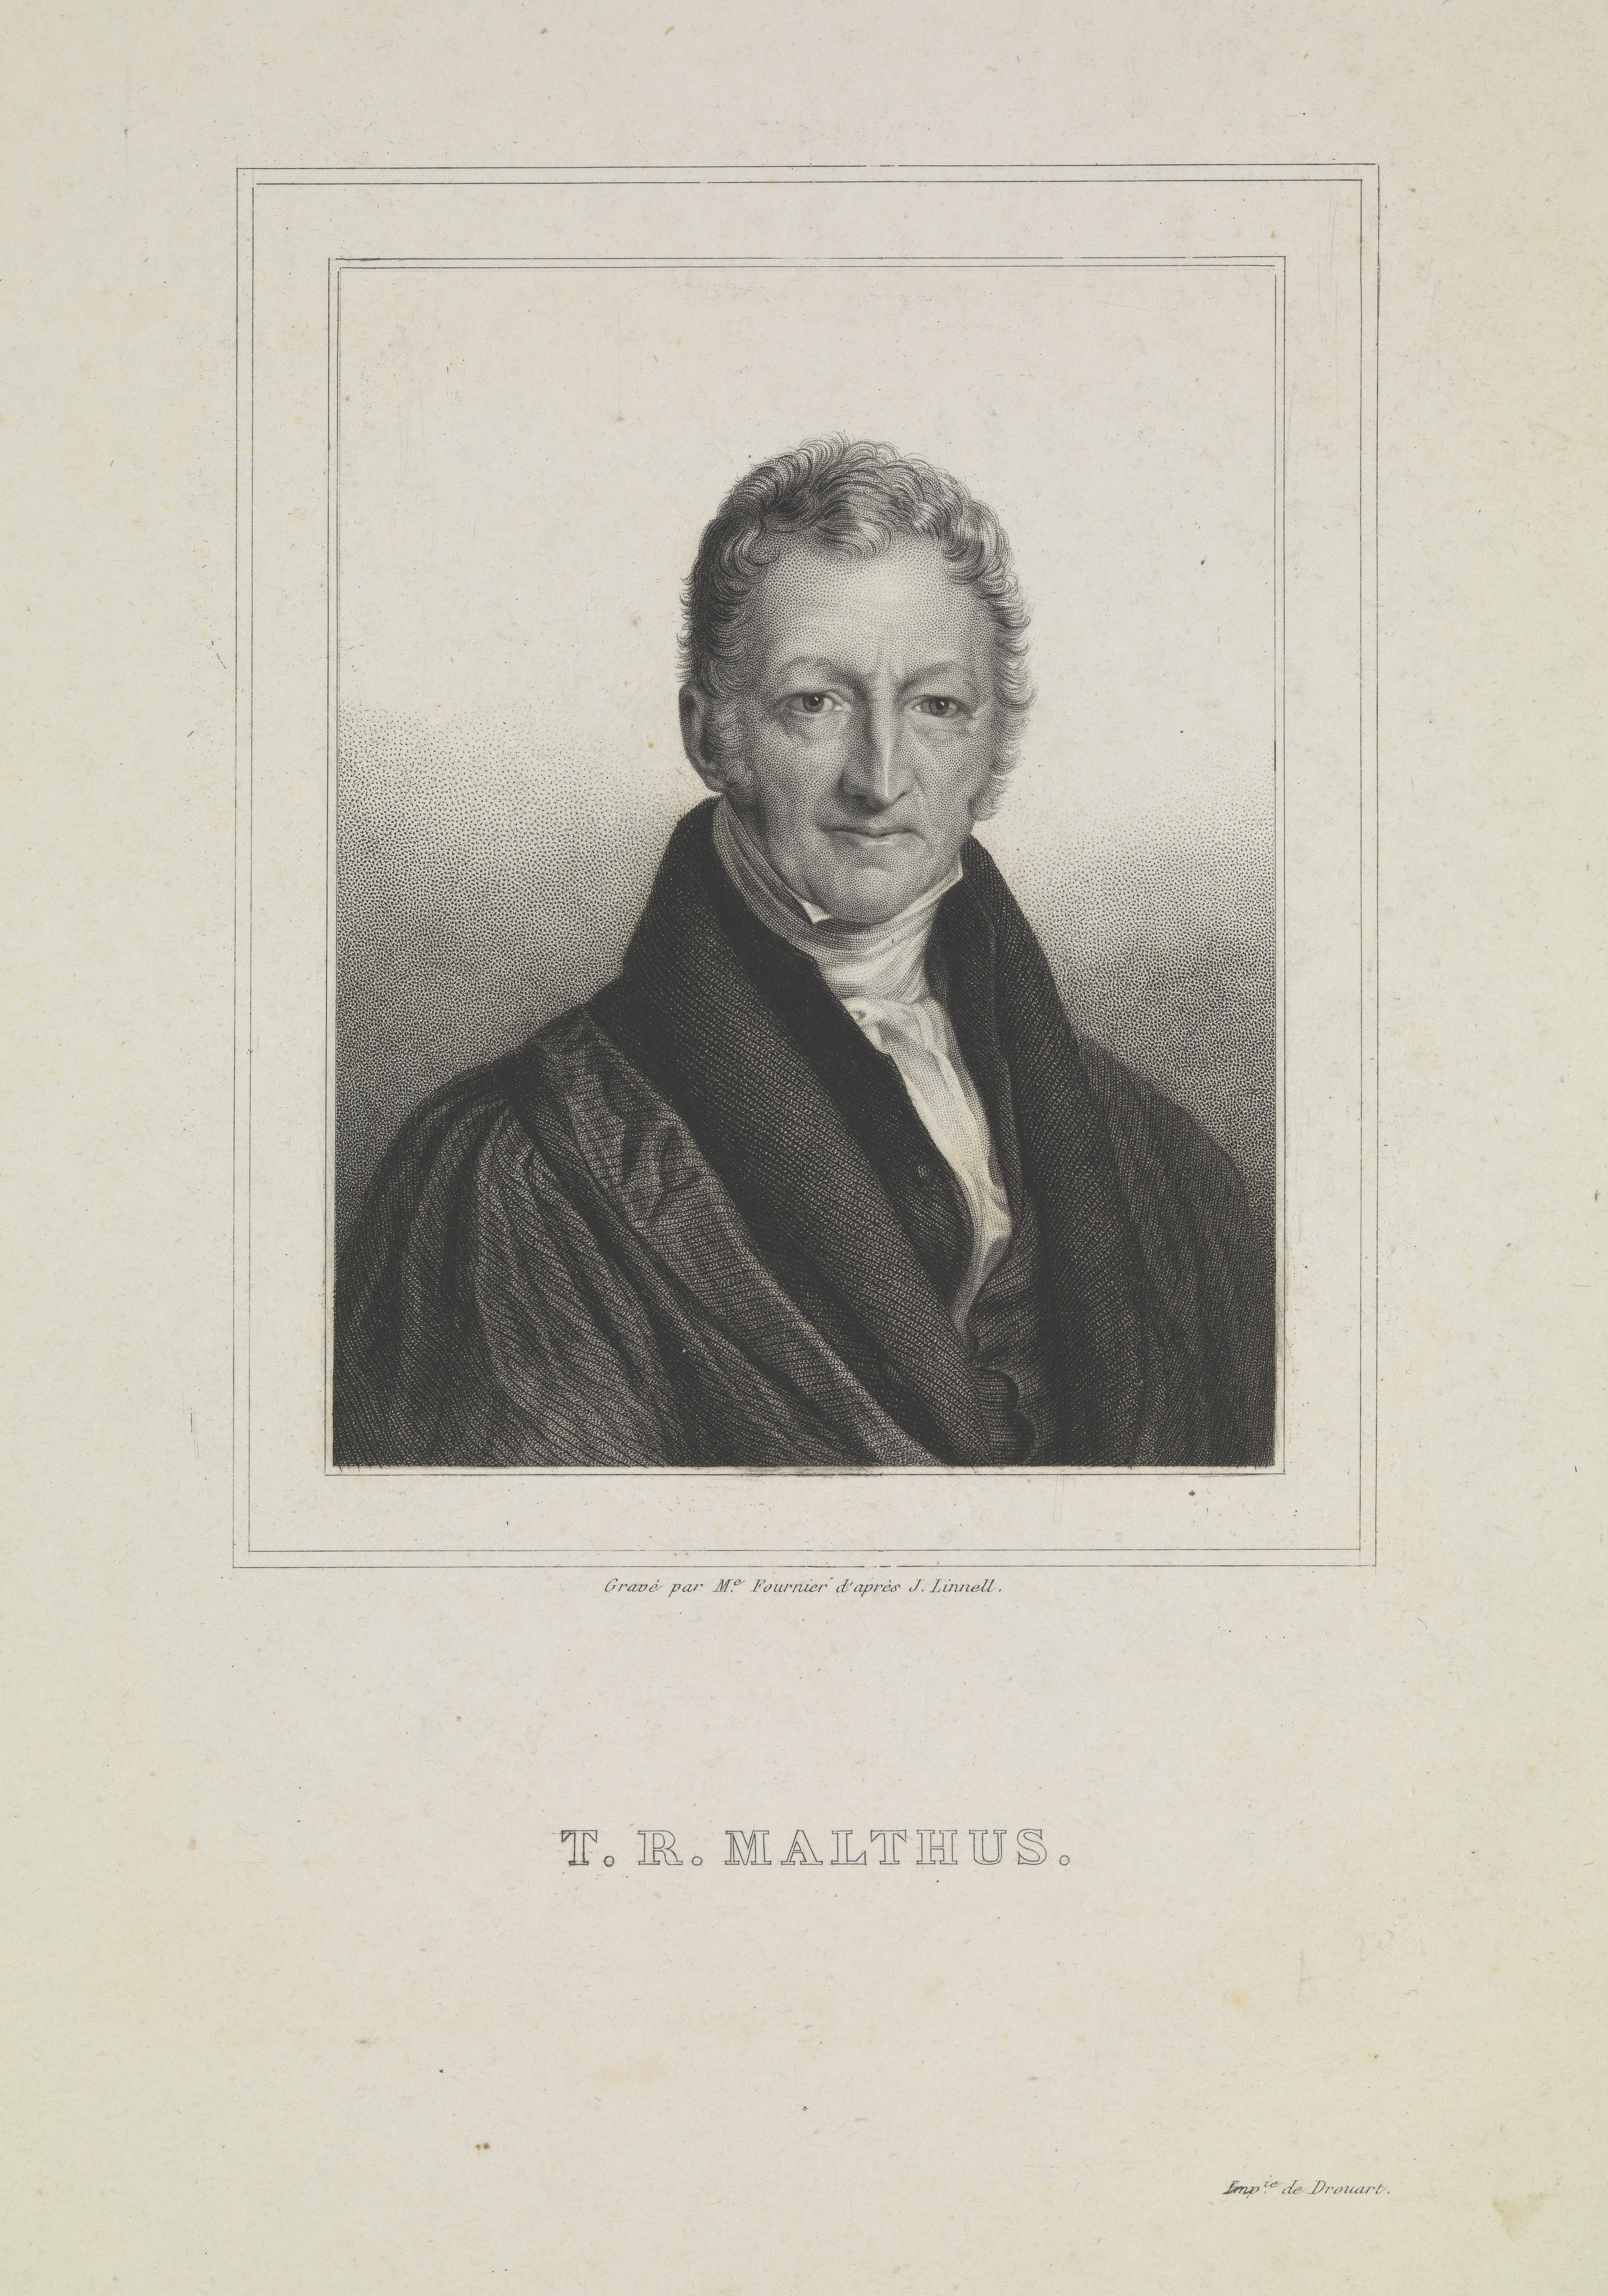 An engraving of Thomas Robert Malthus, typical of